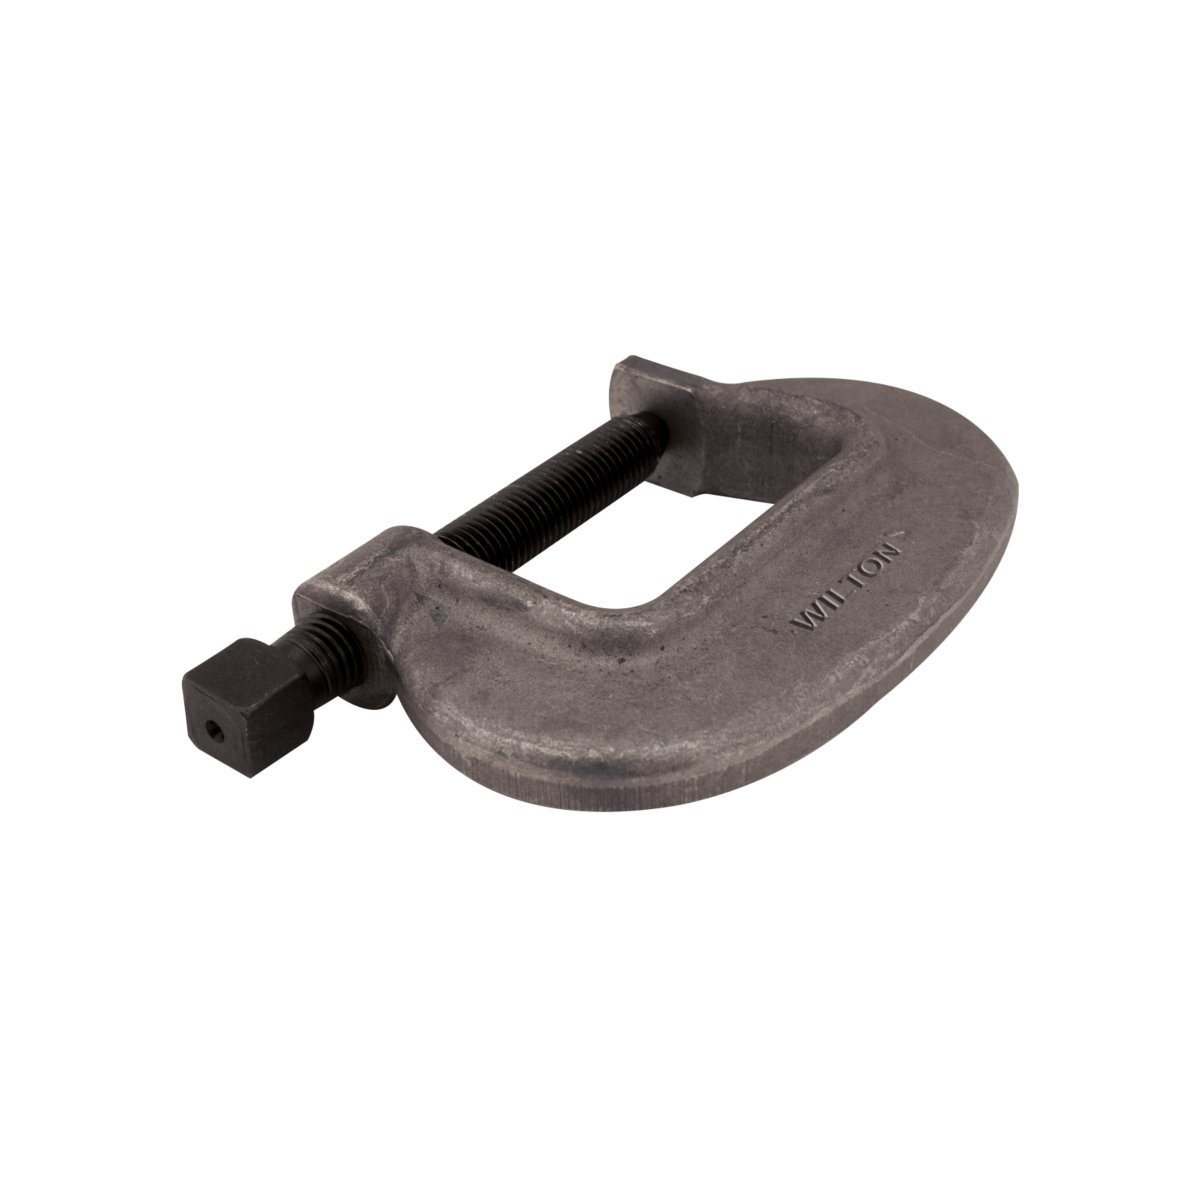 Wilton 14554 4-Fc,''O'' Series Bridge C-Clamp-Full Closing Spindle, 0-Inch-4-1/2-Inch Jaw Opening, 2-3/4-Inch Throat Depth